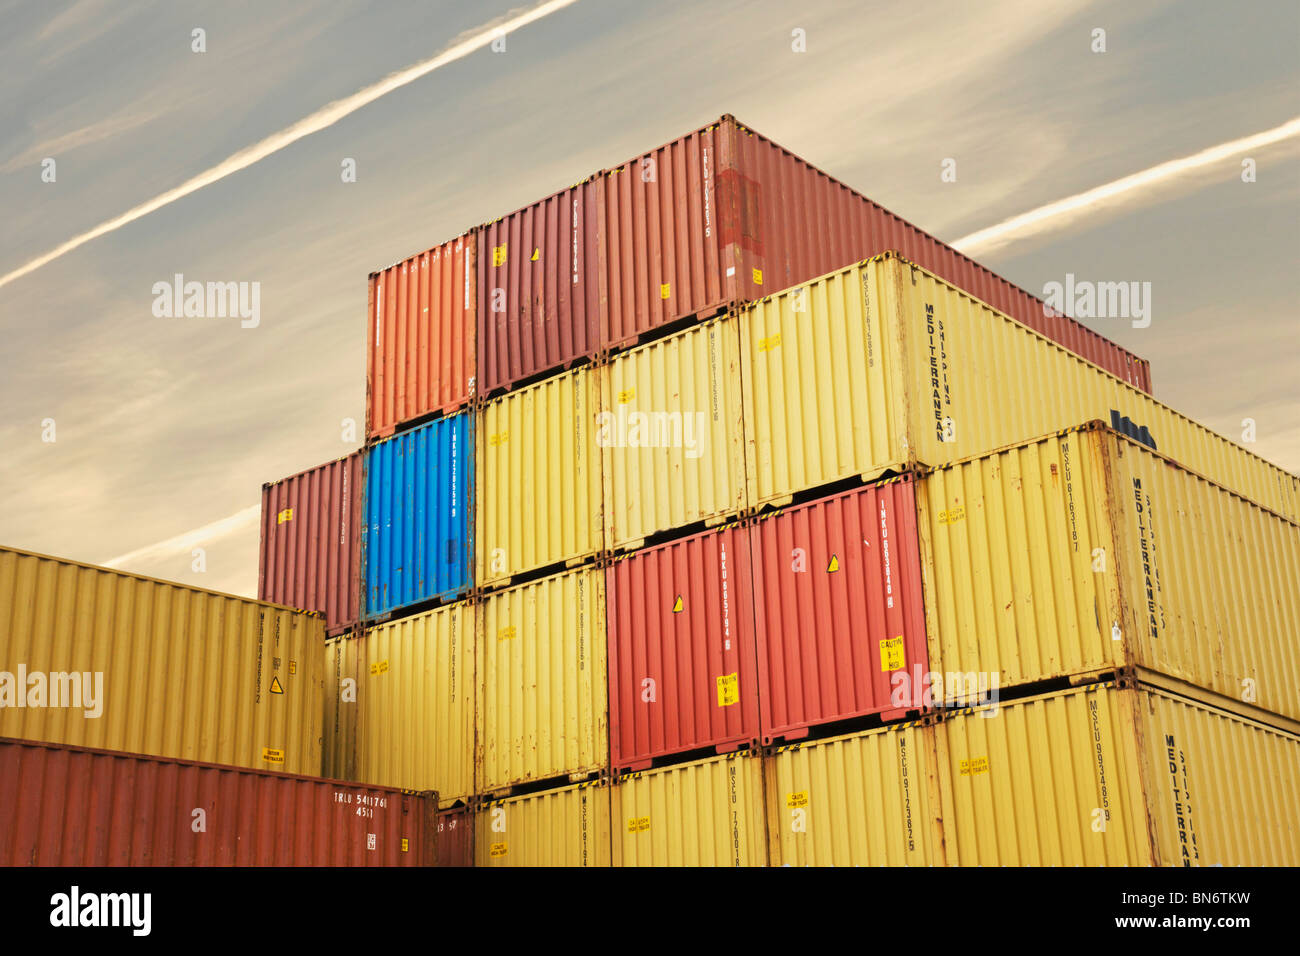 Shipping containers under jet trails. - Stock Image